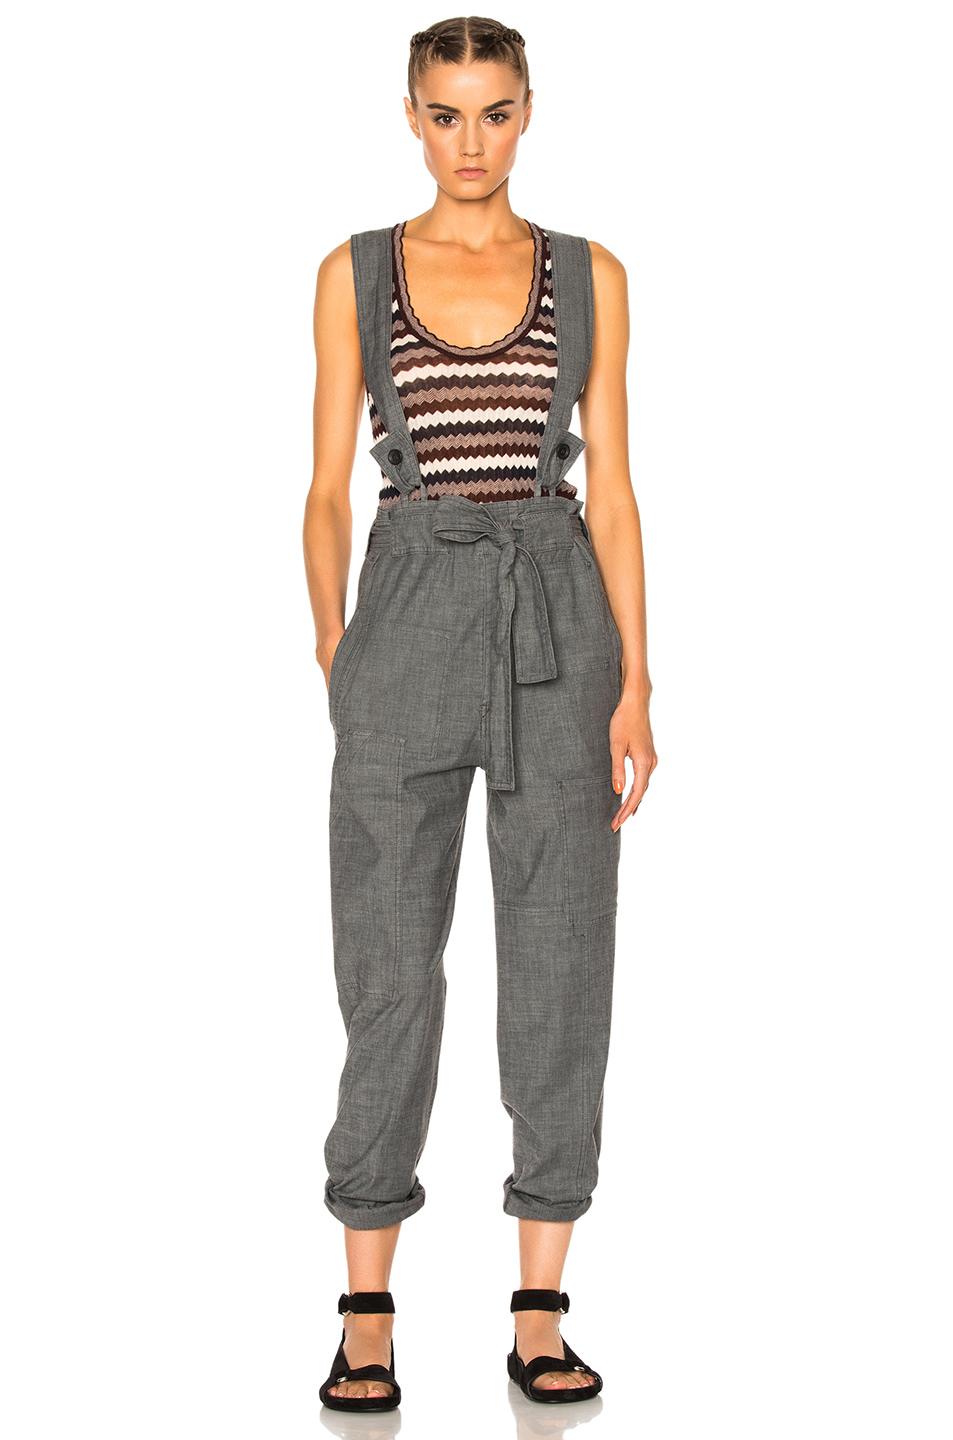 Isabel Marant Etoile Adrien Chambray Overalls in Gray